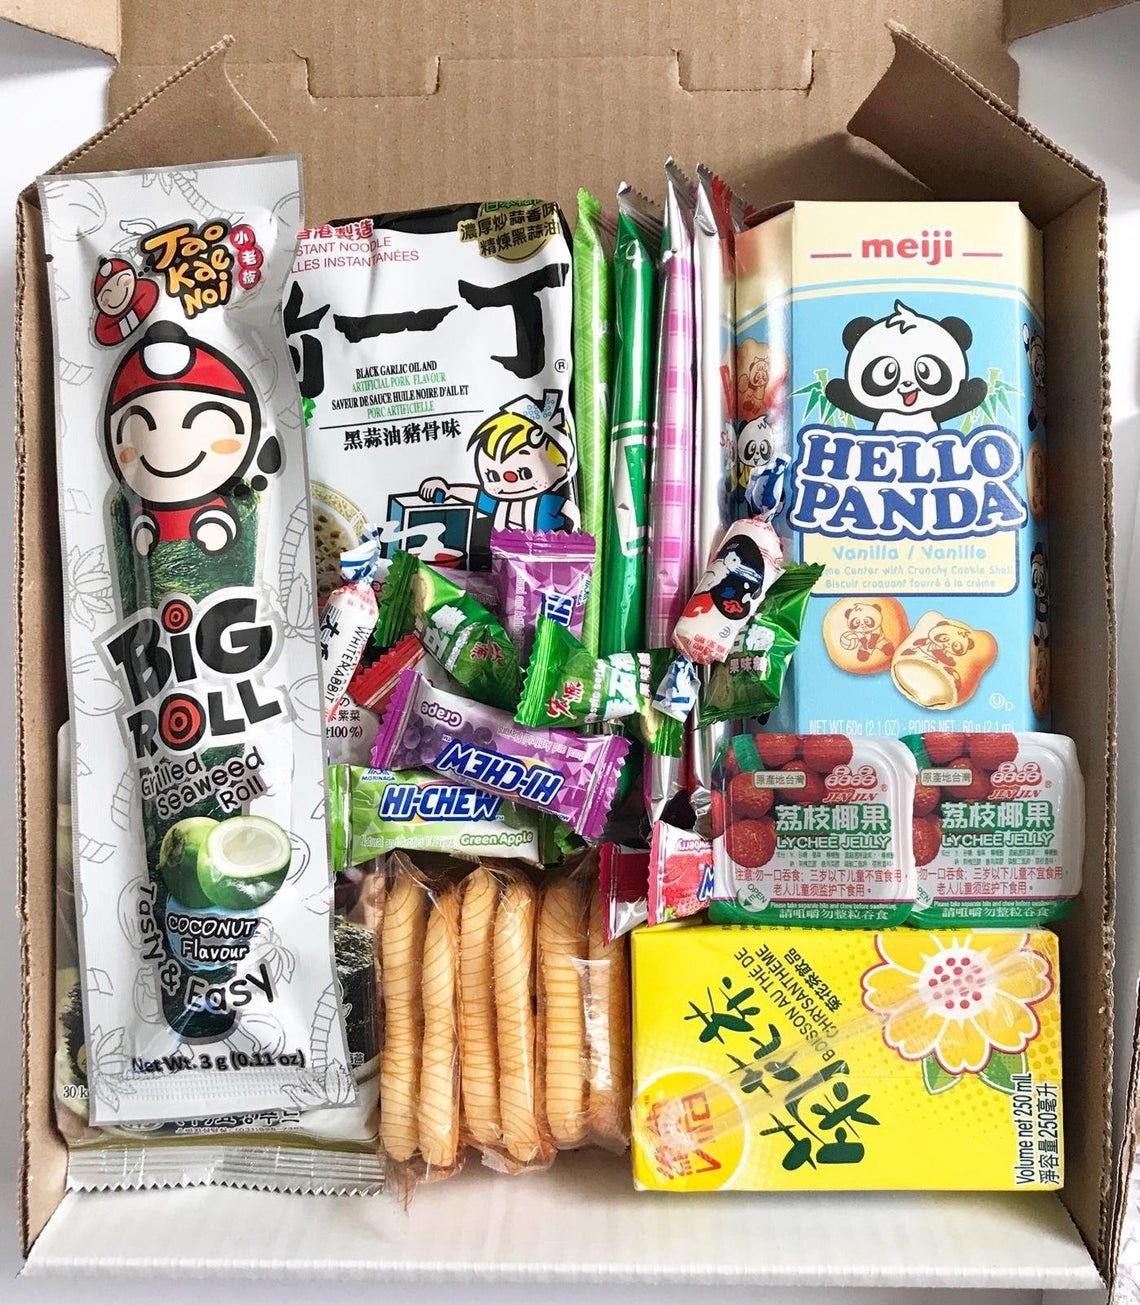 A box of candies and snacks